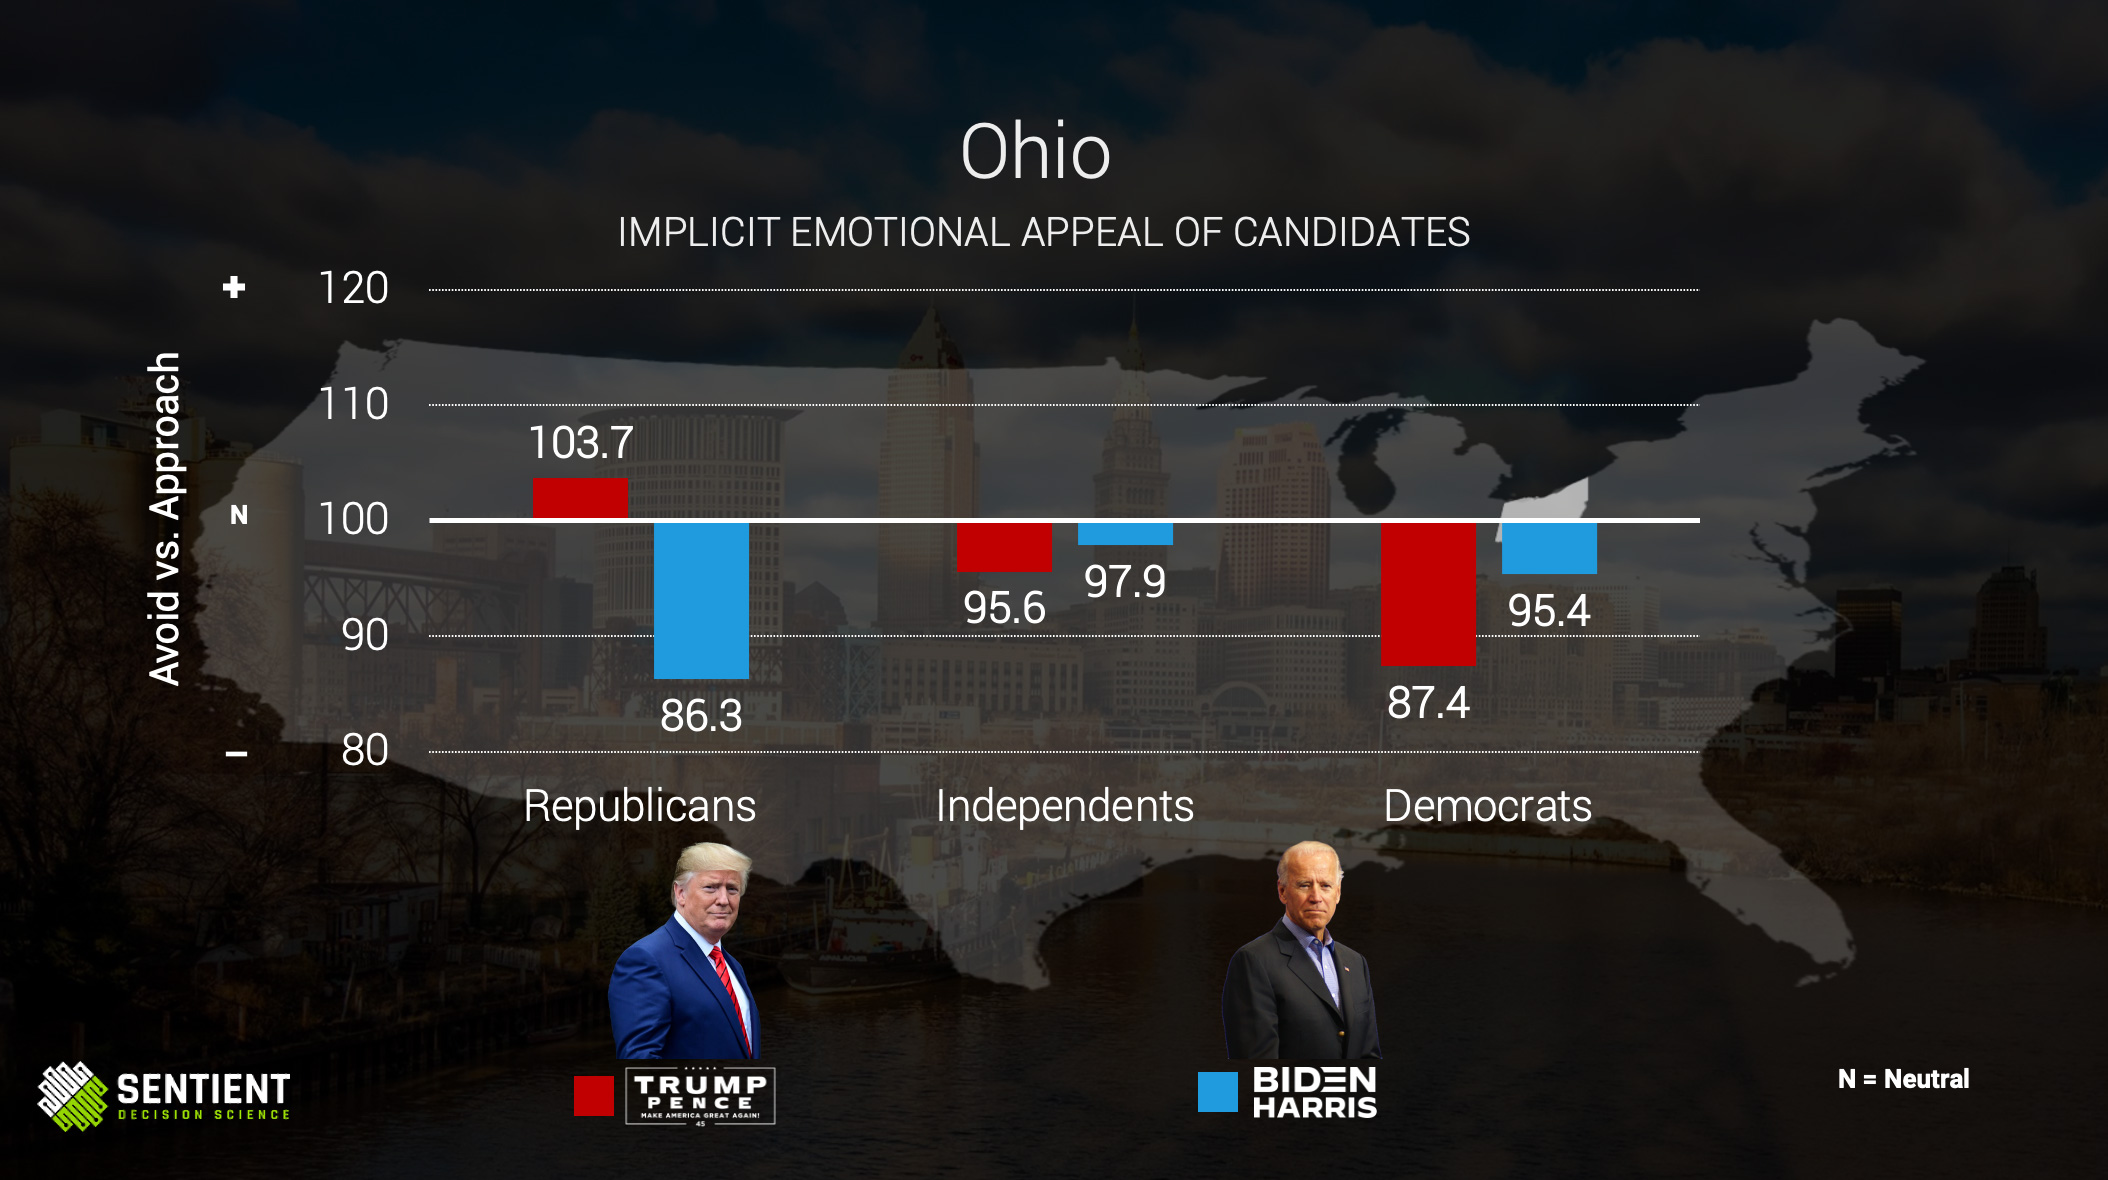 Ohio Implicit Emotional Appeal of Candidates